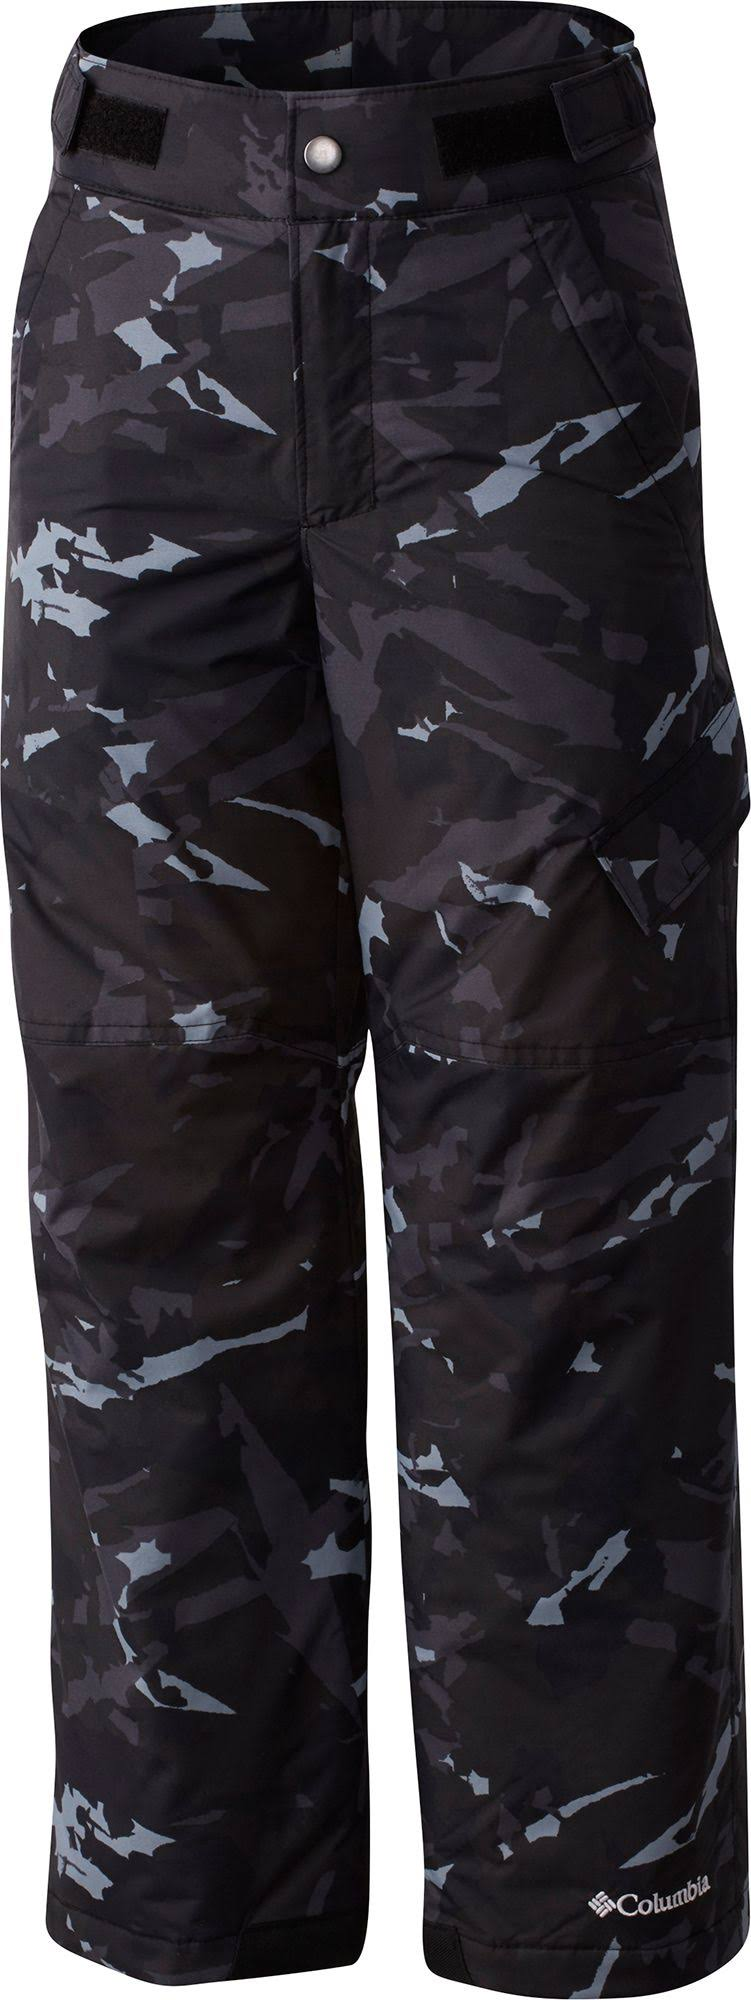 Columbia Youth Ice Slope II Insulated Pants, Size: XS, Black